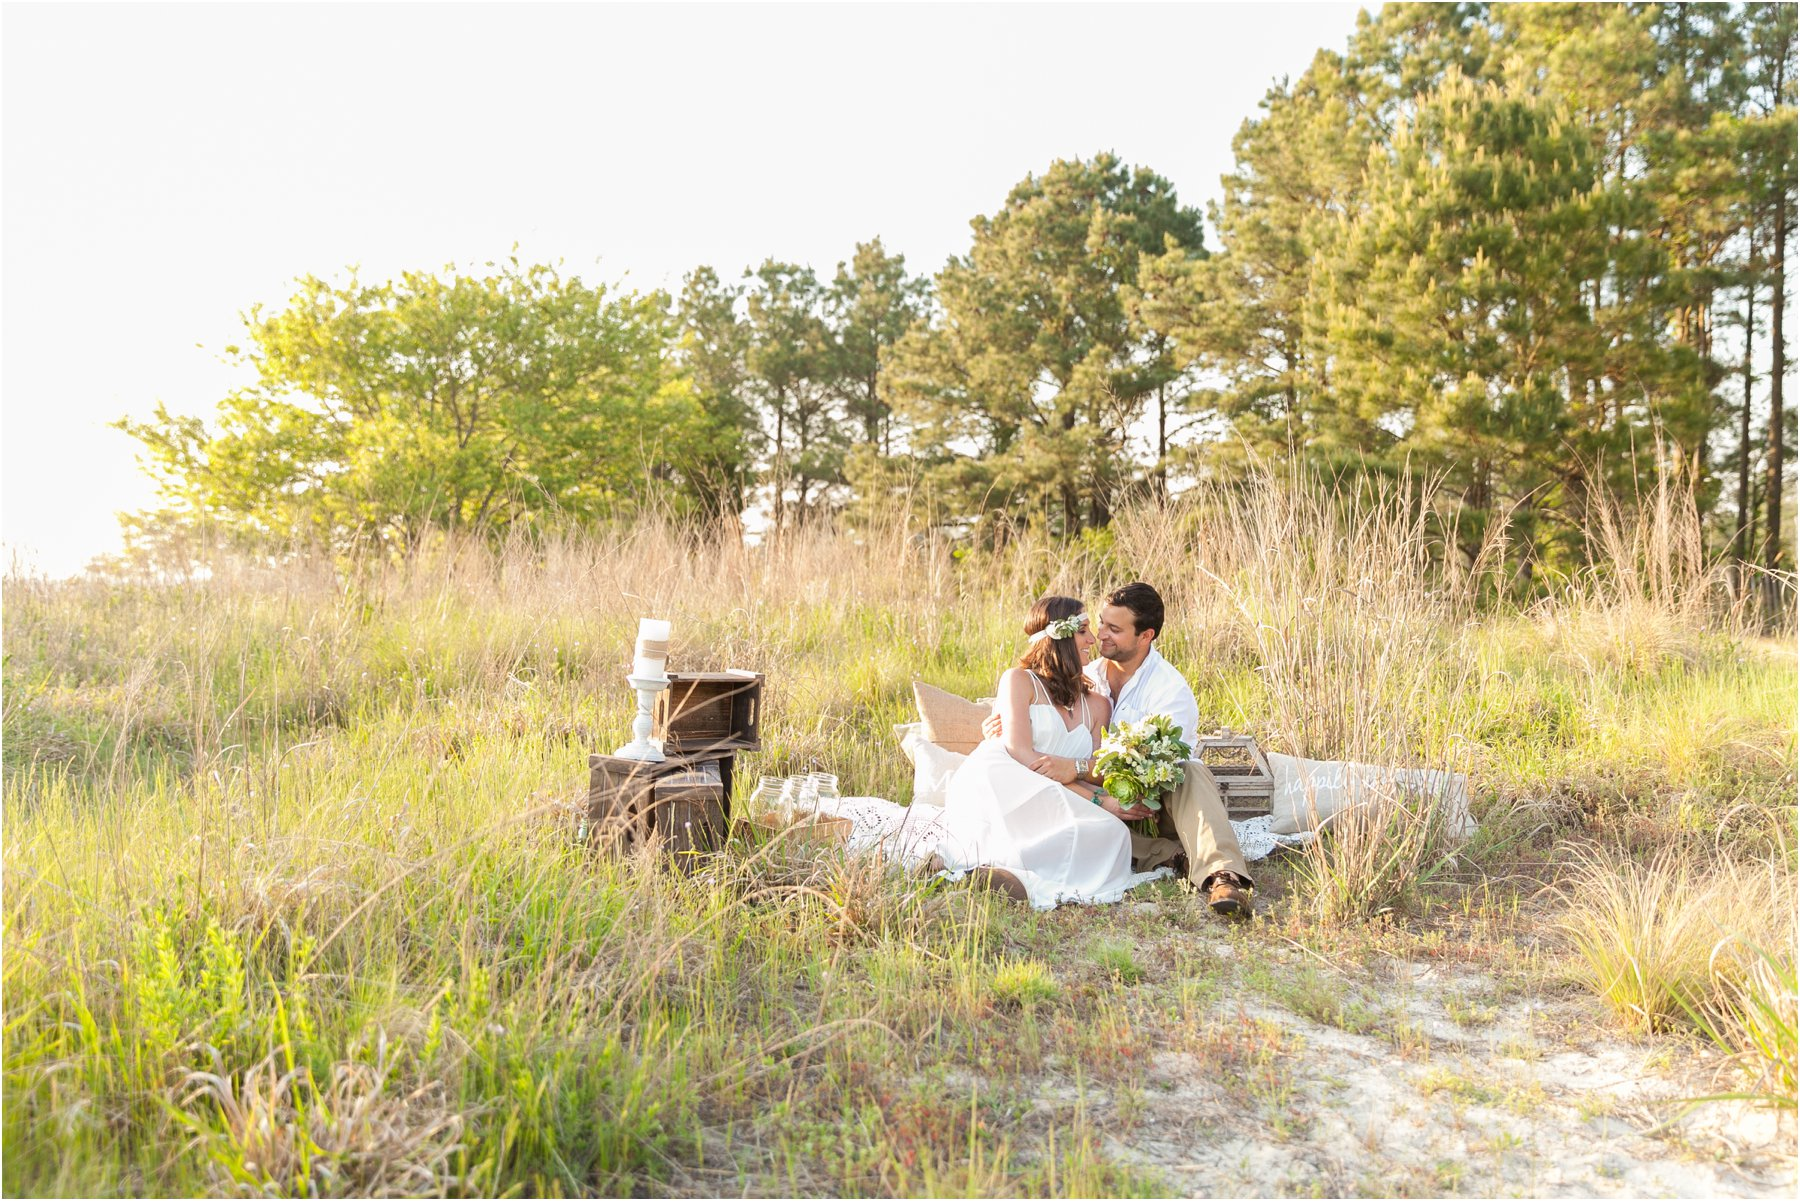 Nofolk_Zoo_engagement_photography_virginia_Jessica_ryan_photography_0178